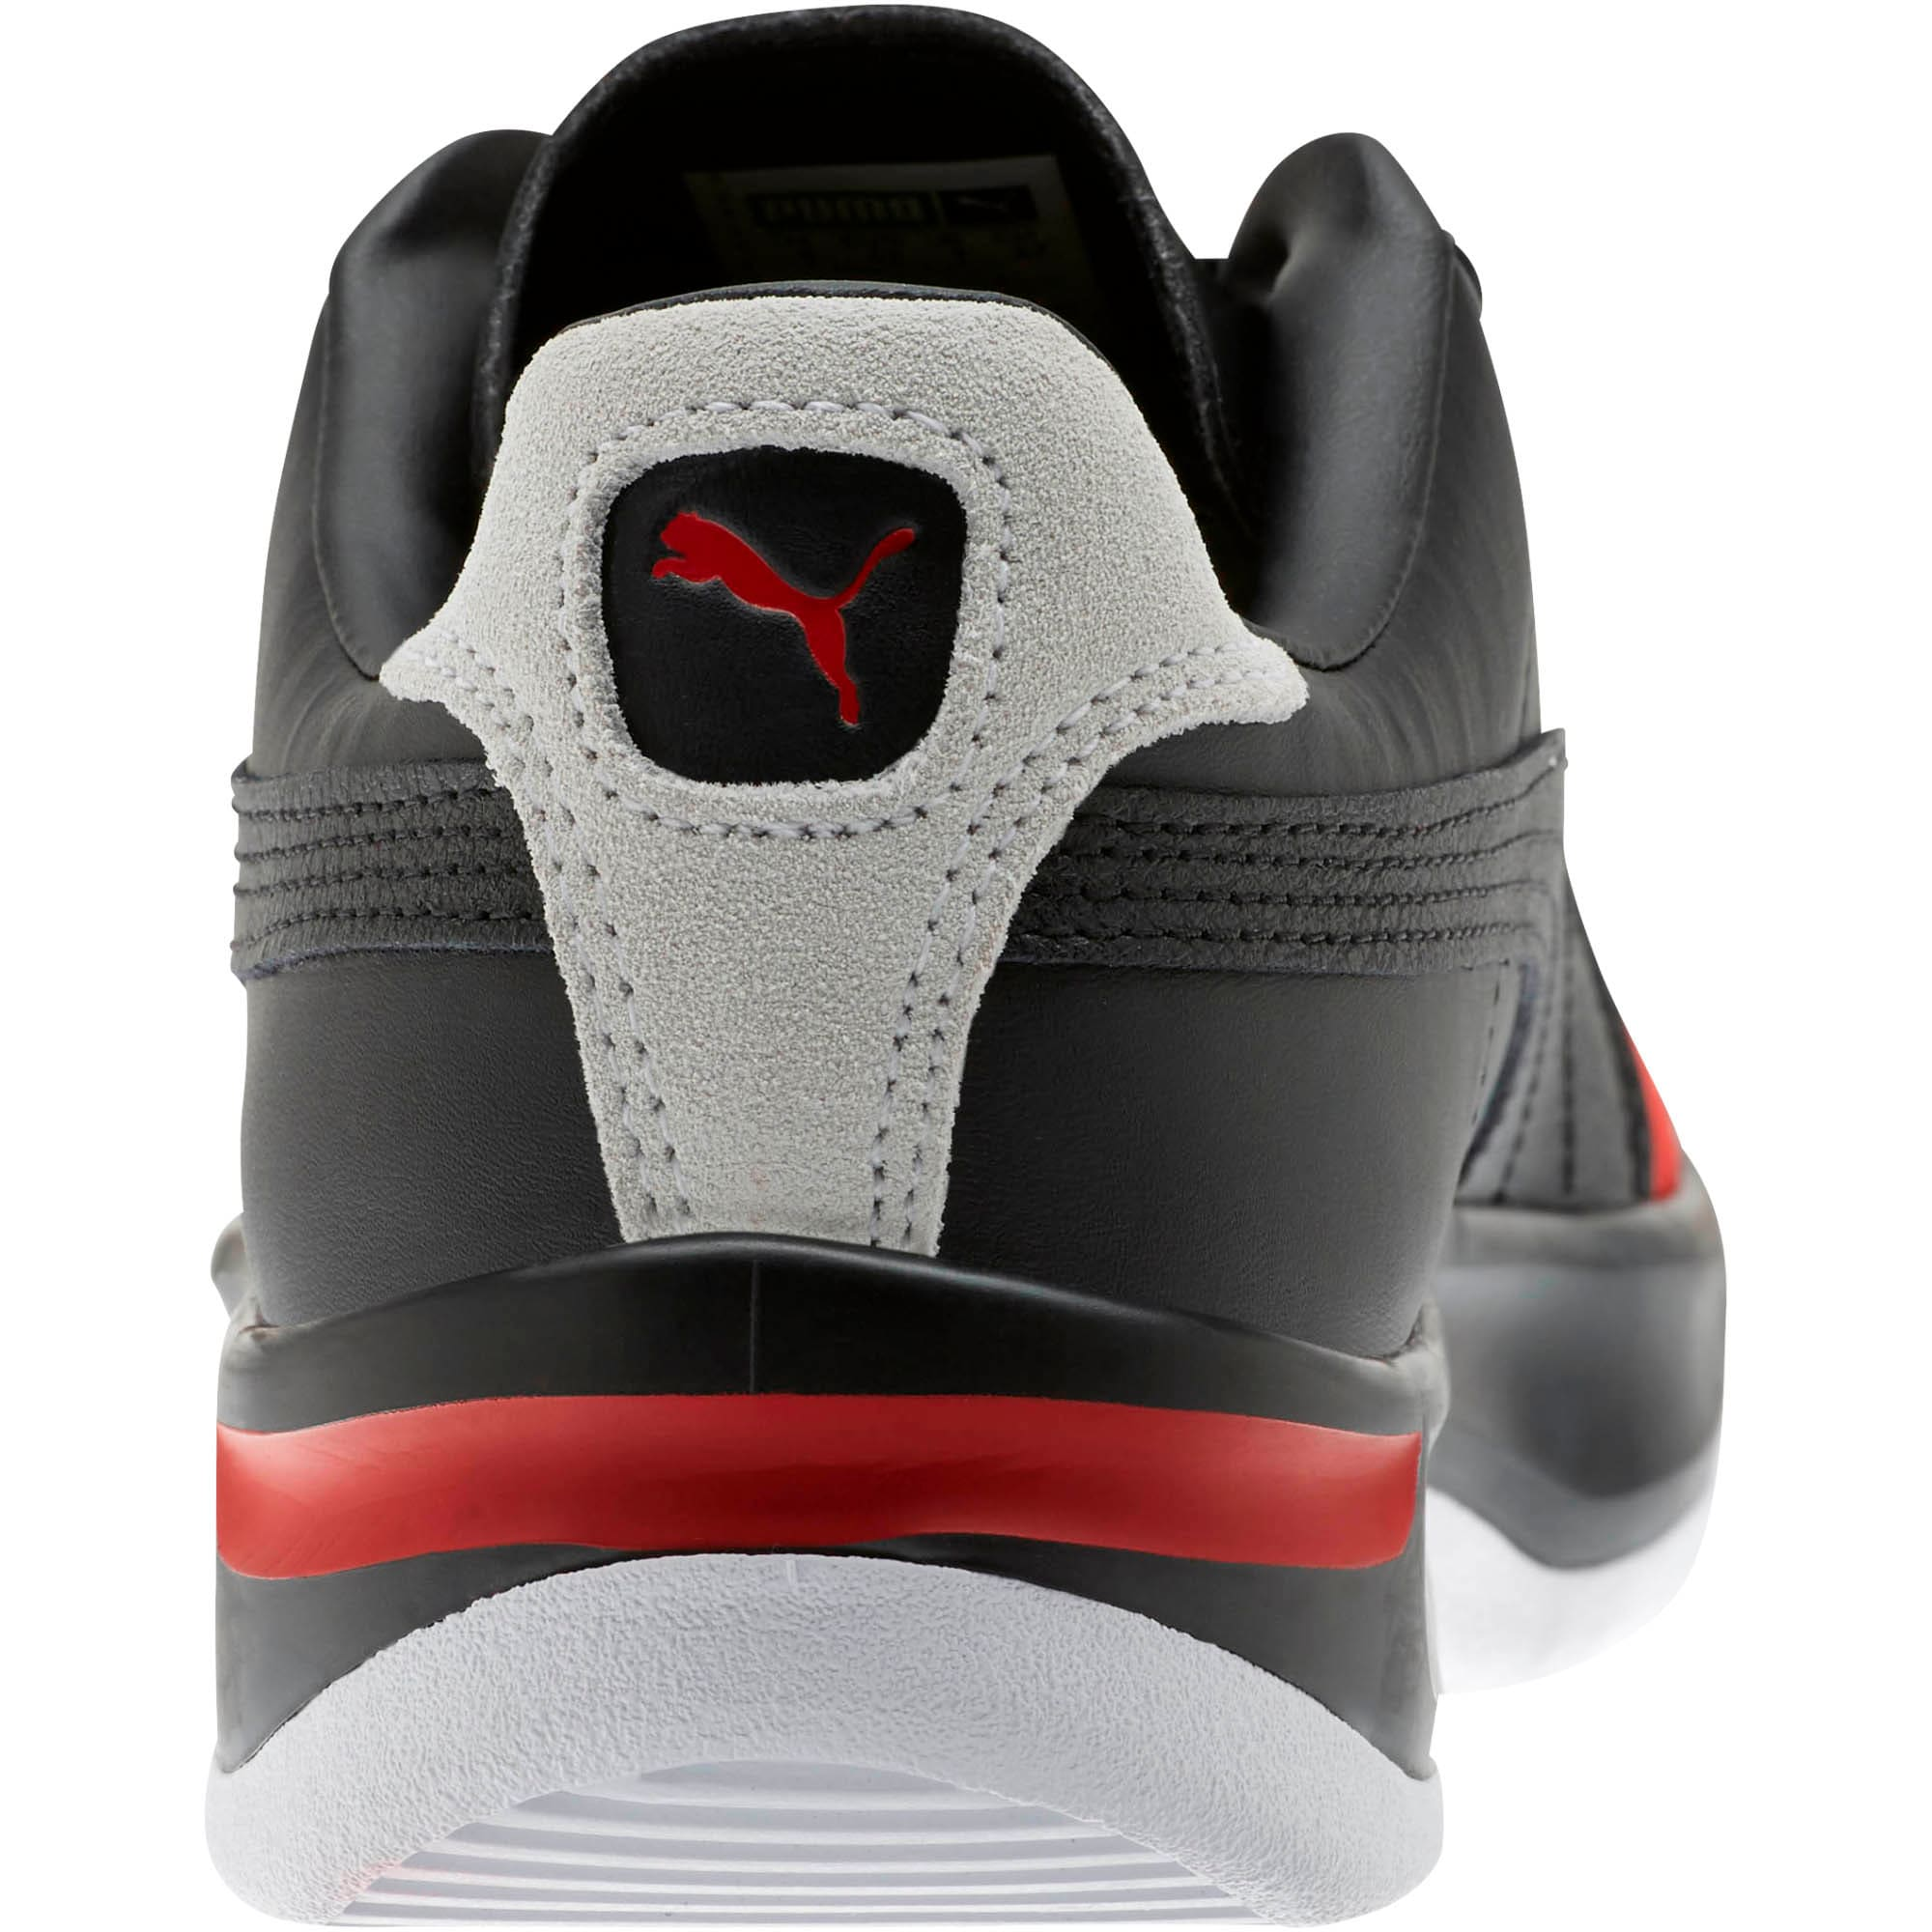 Thumbnail 3 of GV Special Speedway Men's Sneakers, Puma Black-High Risk Red, medium